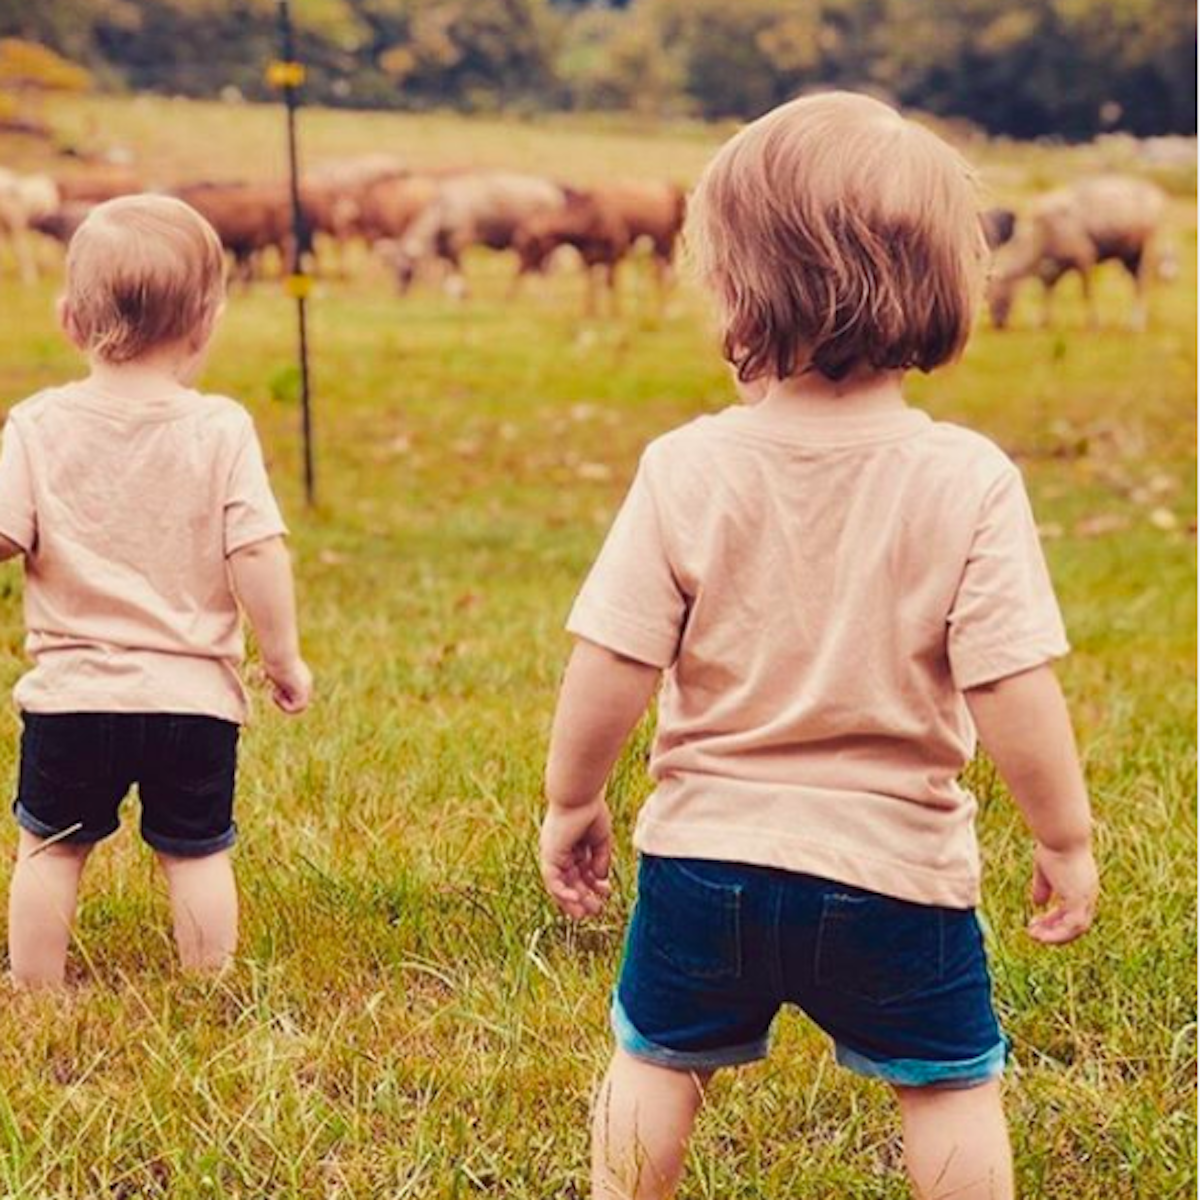 two twin toddlers in a field looking at cows